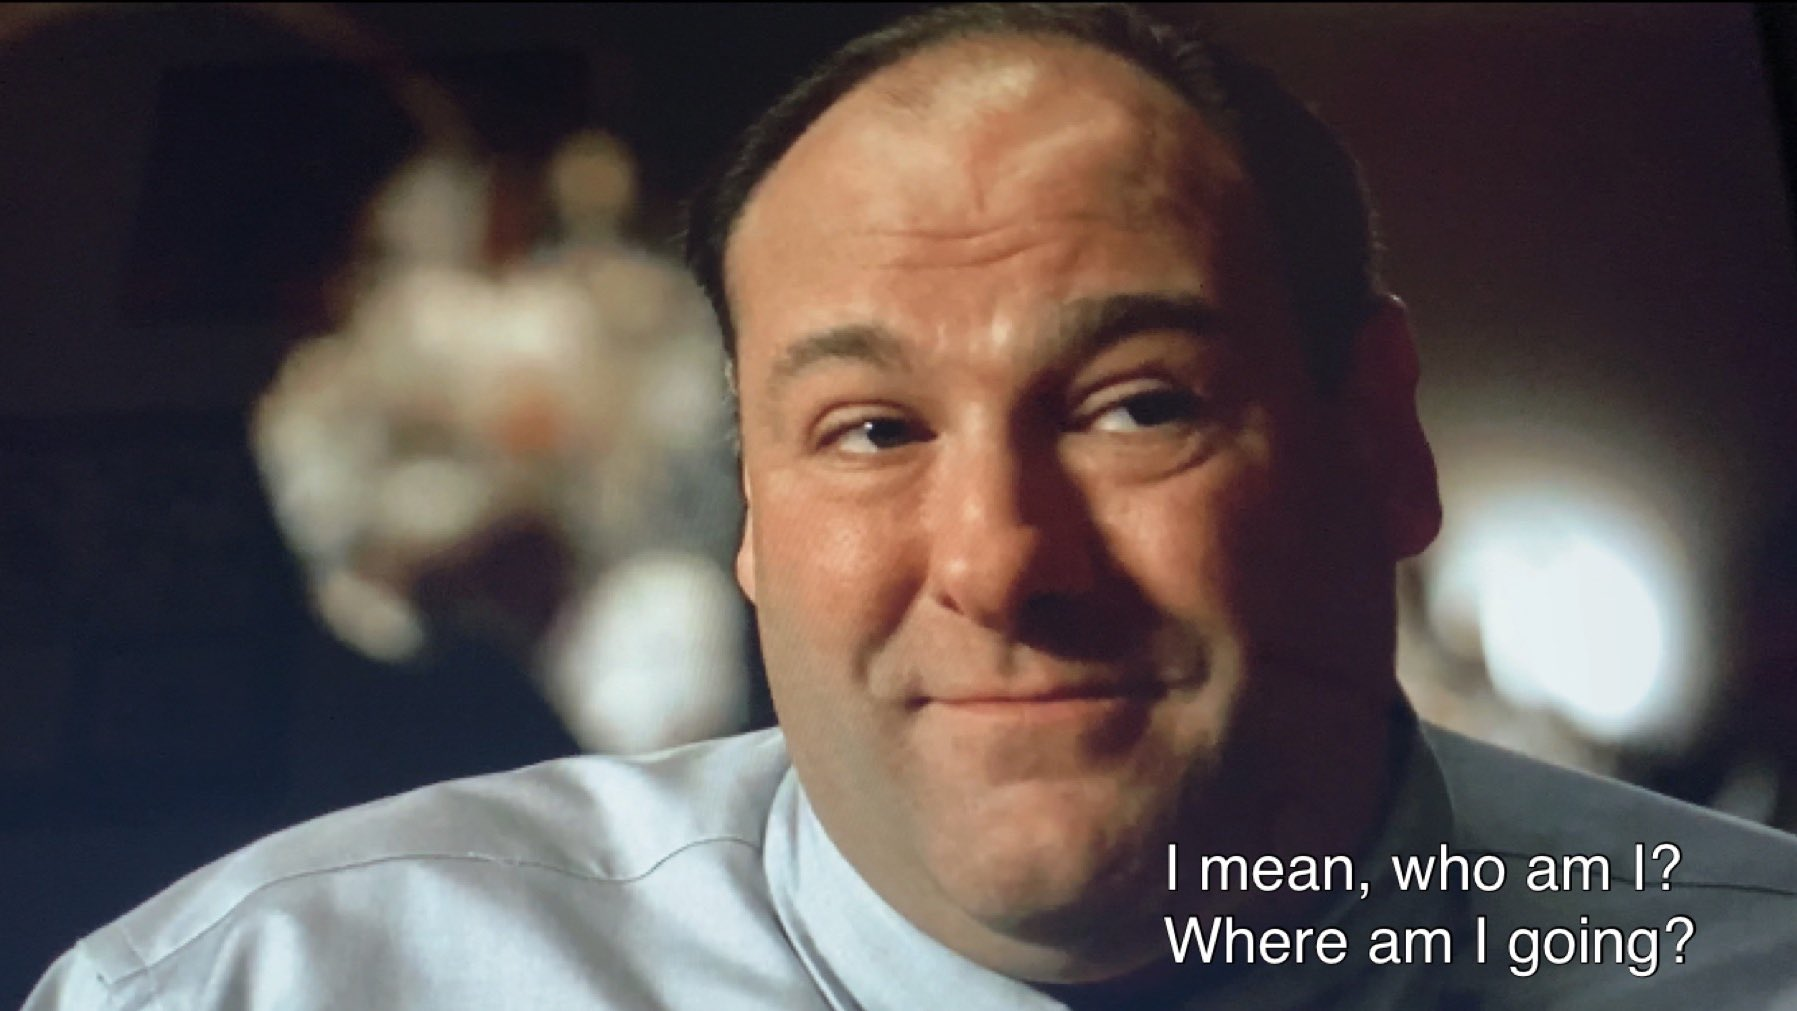 Tony Soprano is asking who he is and where he is going.